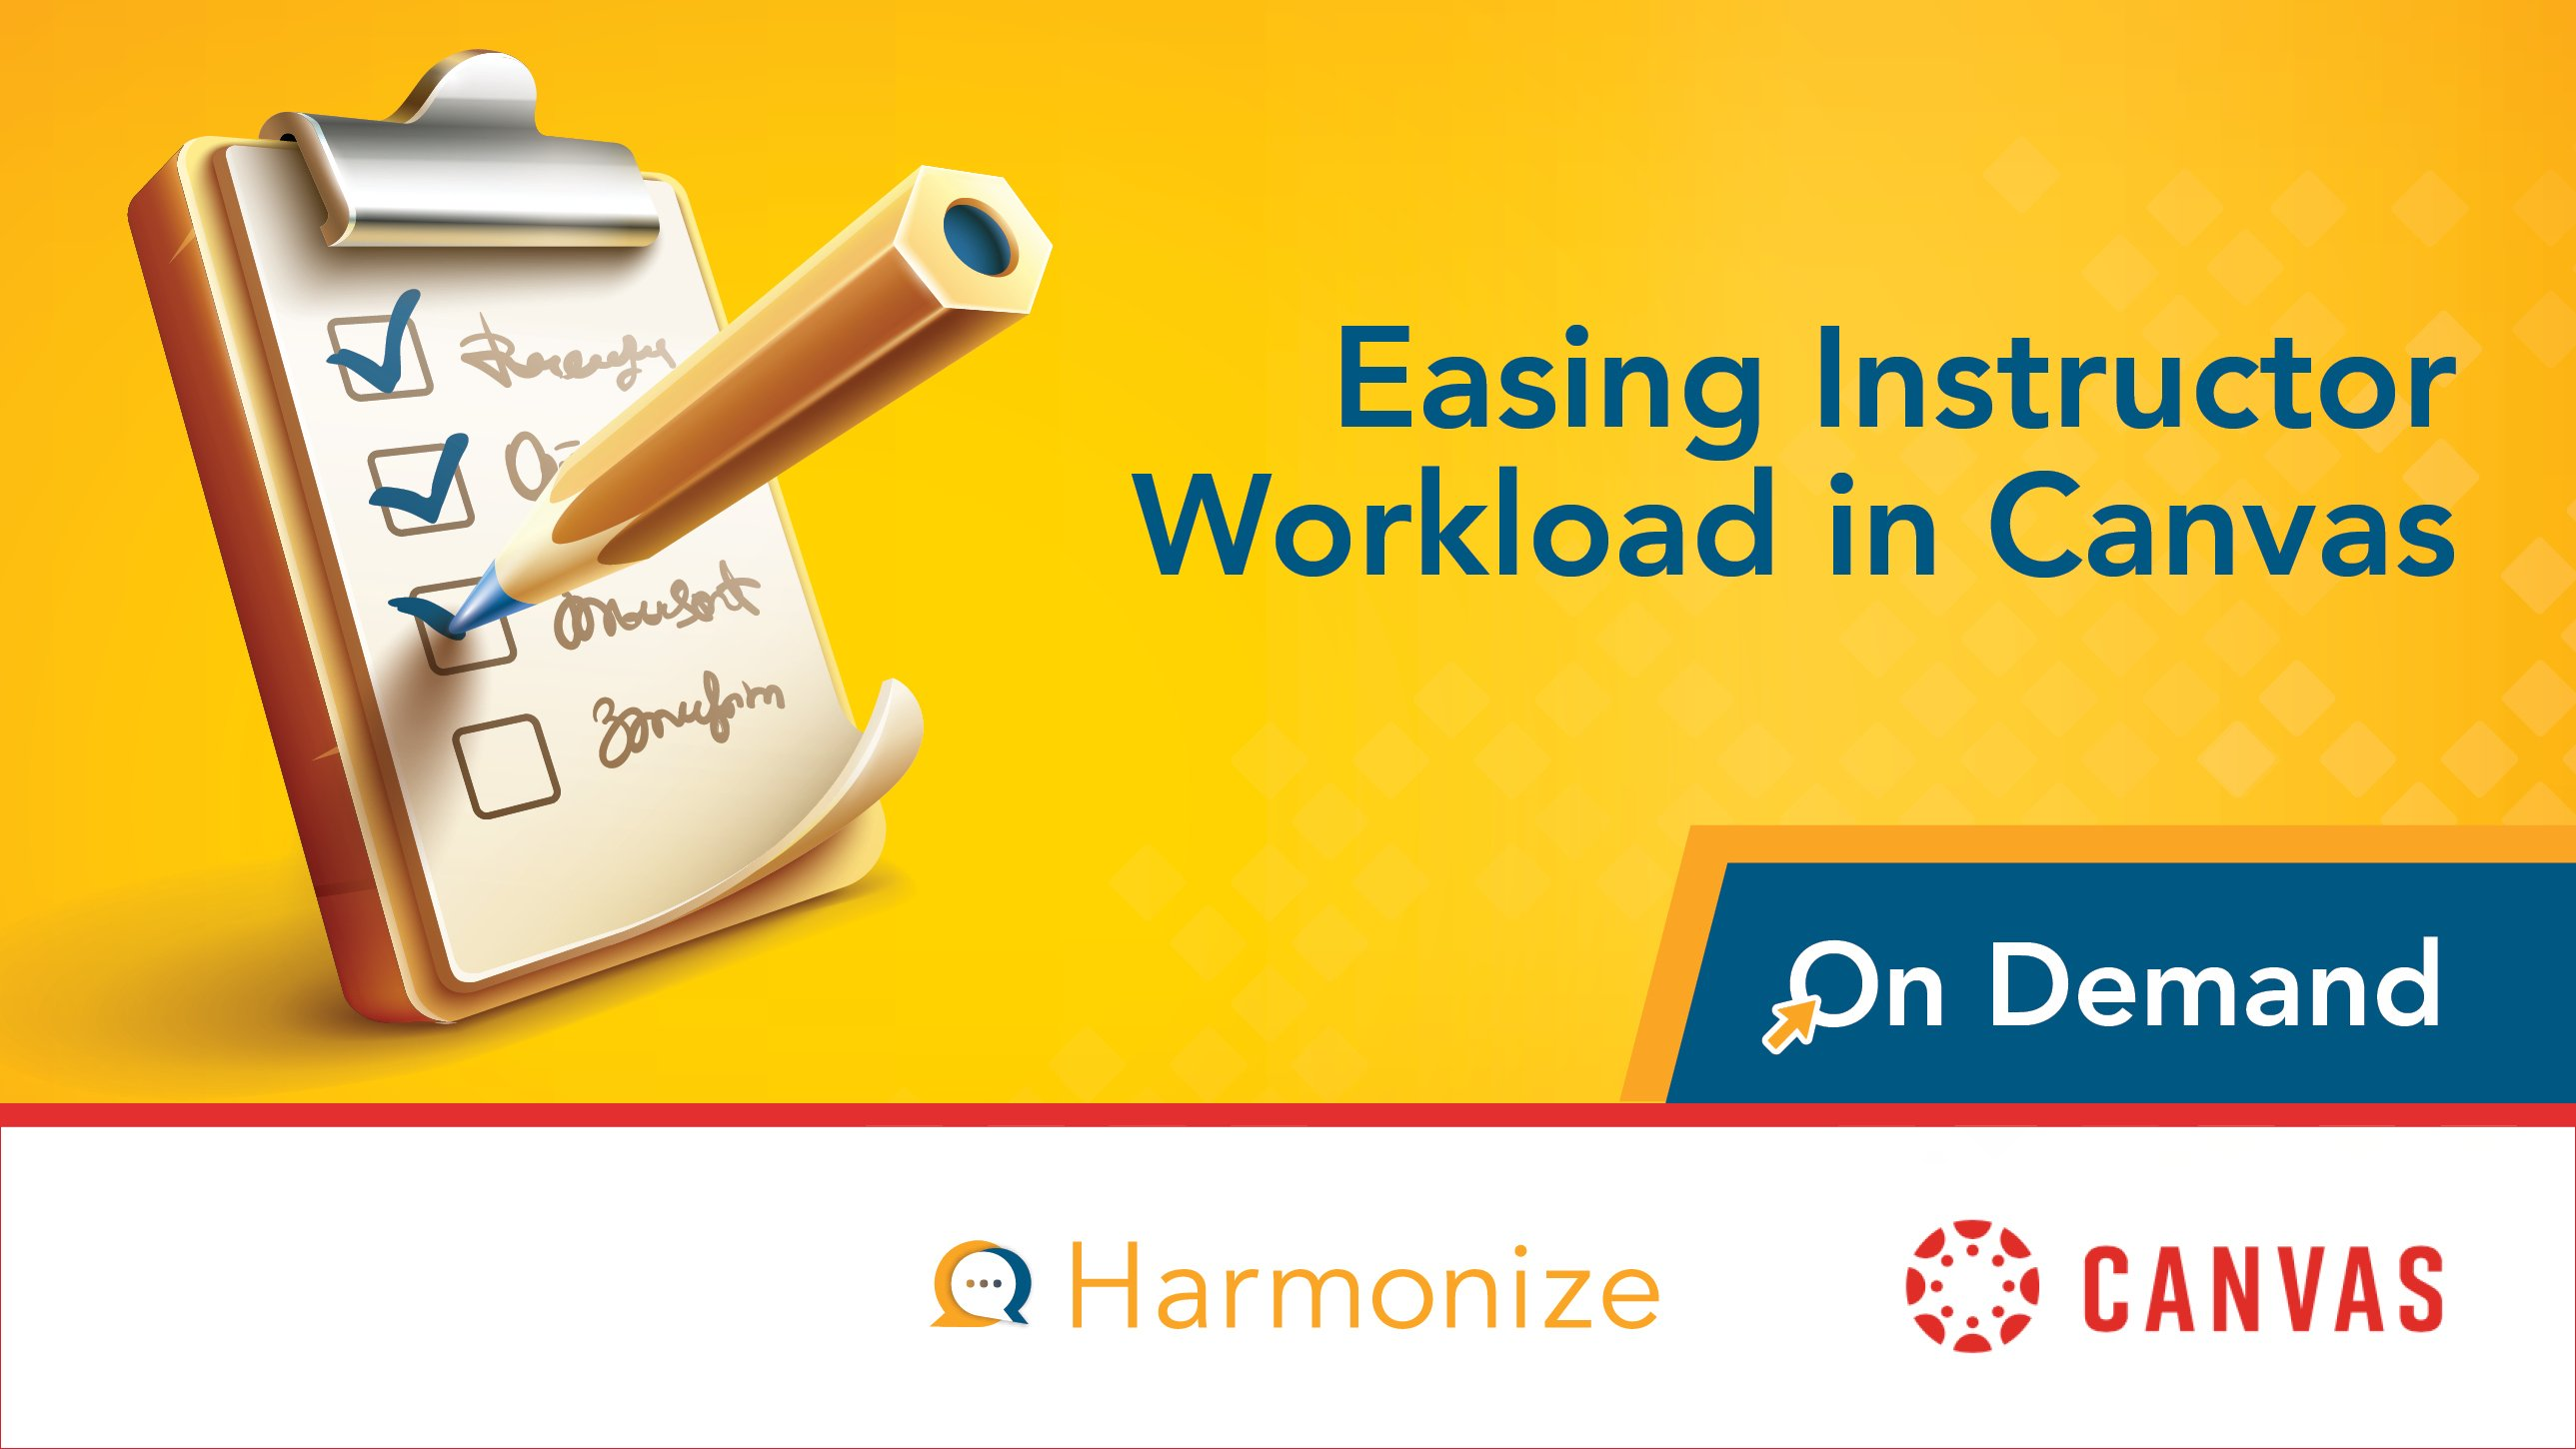 Easing Instructor Workload in Canvas